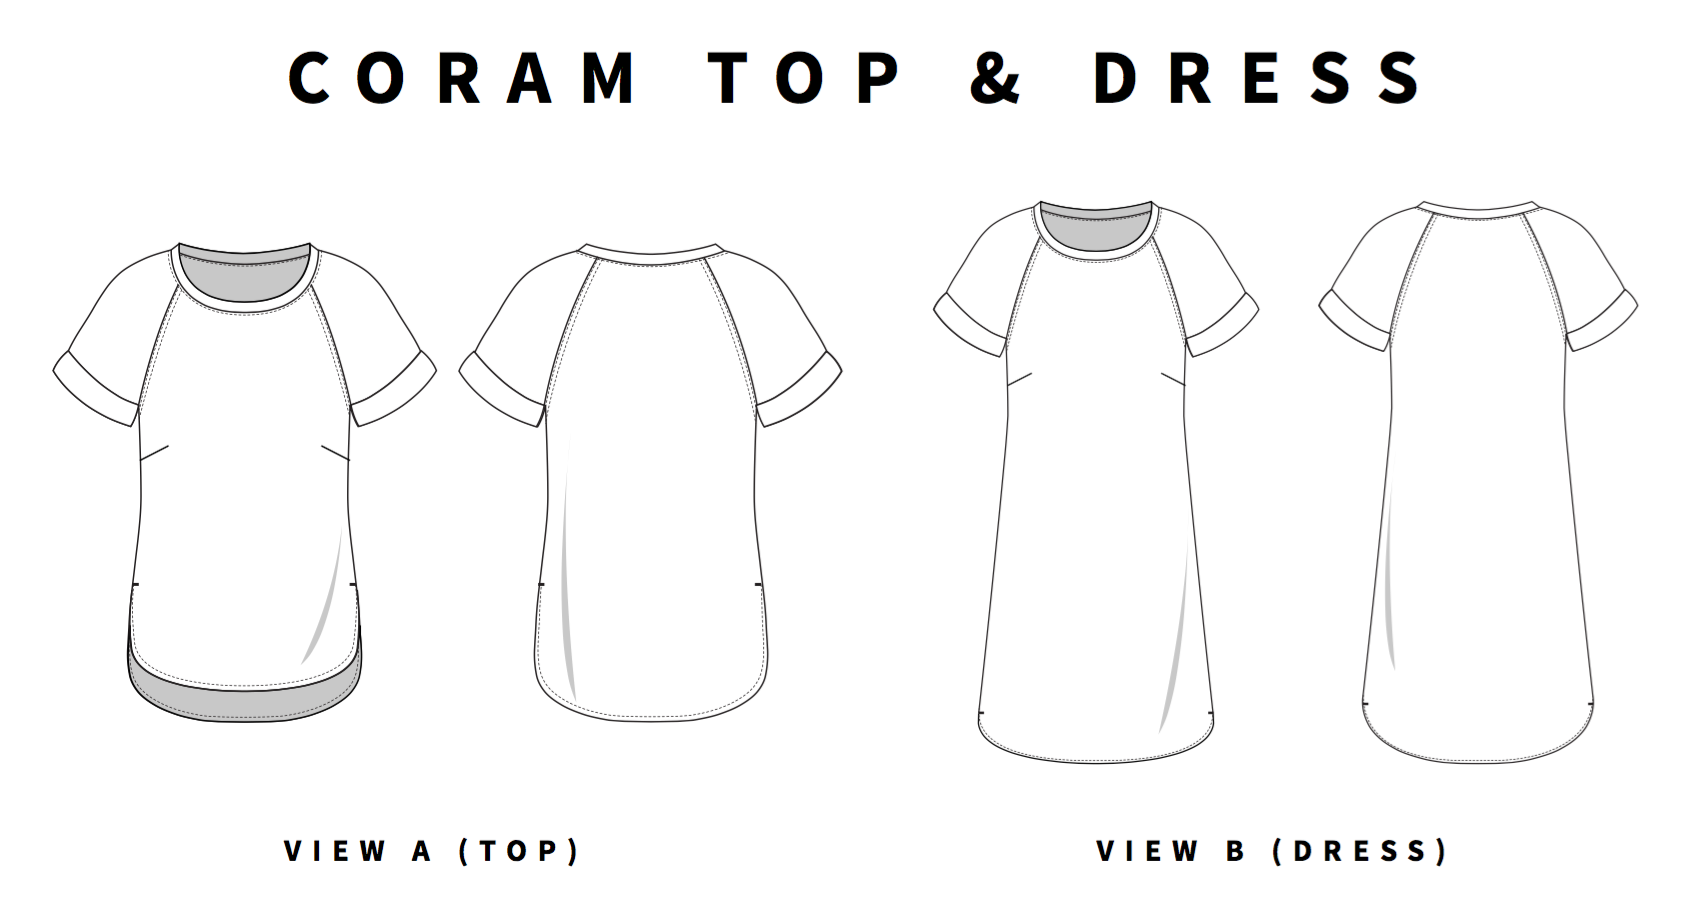 coram top and dress line drawings